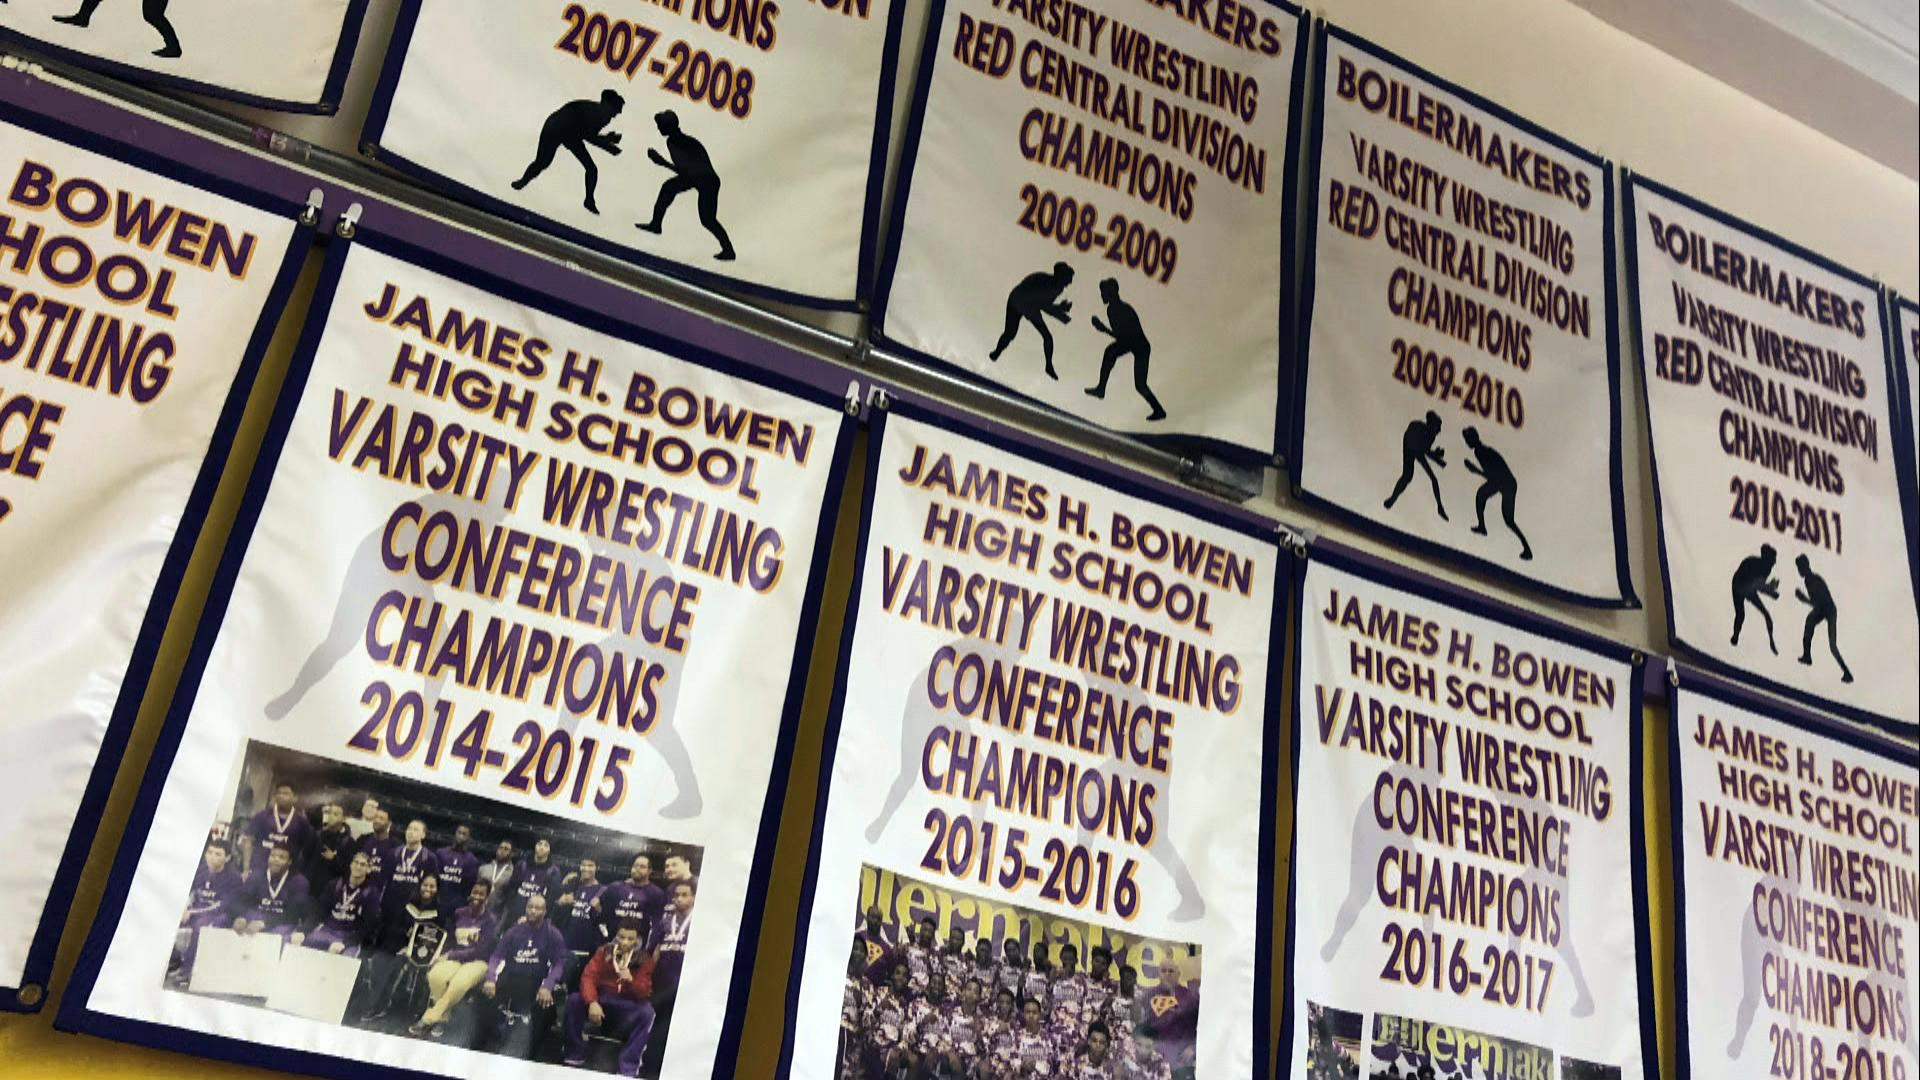 Wilson started Bowen's wrestling program and turned it into a powerhouse.